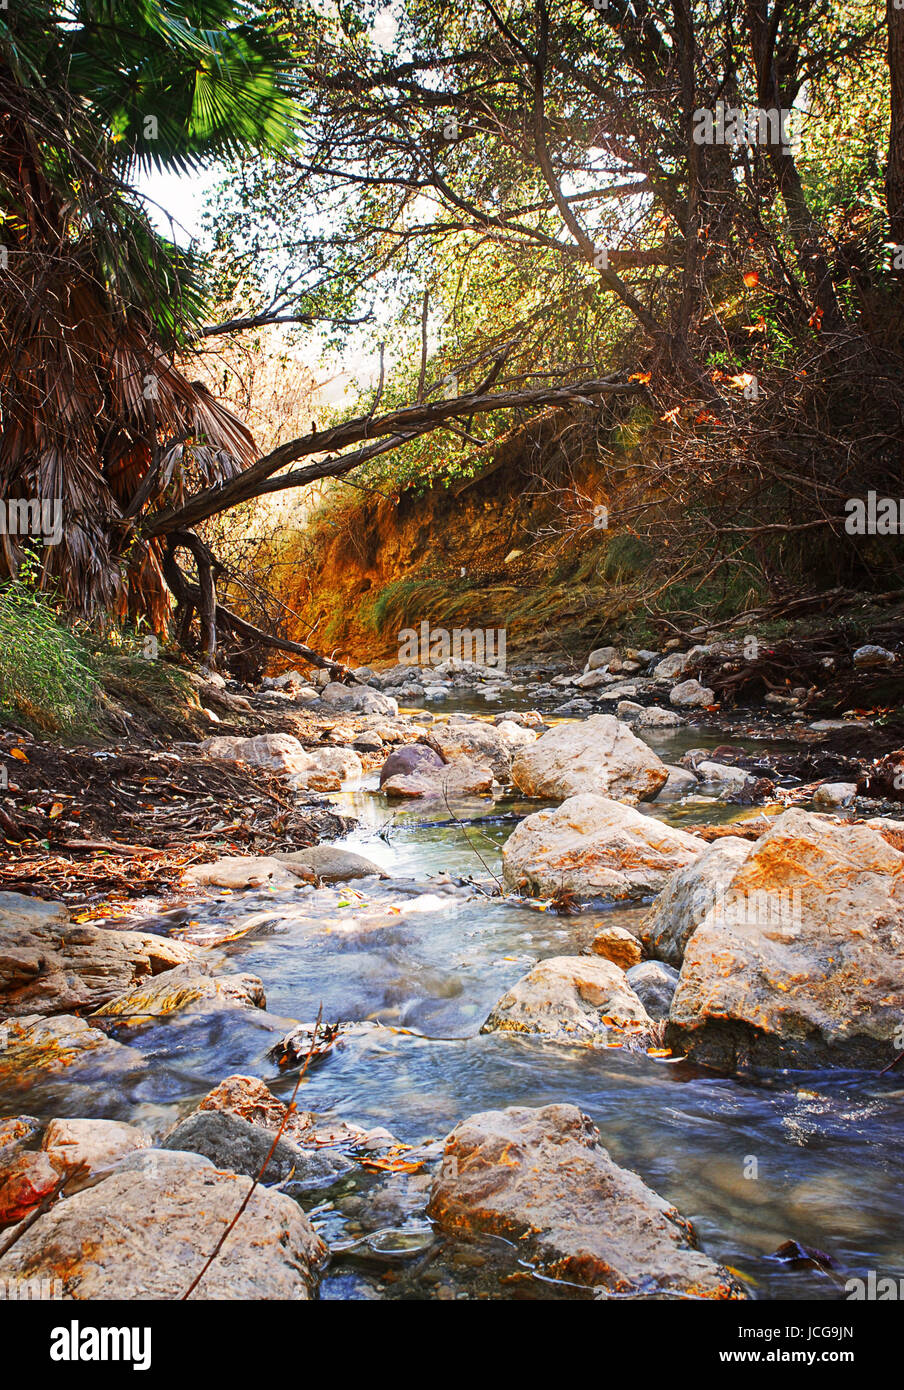 rocky winding stream in forest with rusty orange on rocks - Stock Image